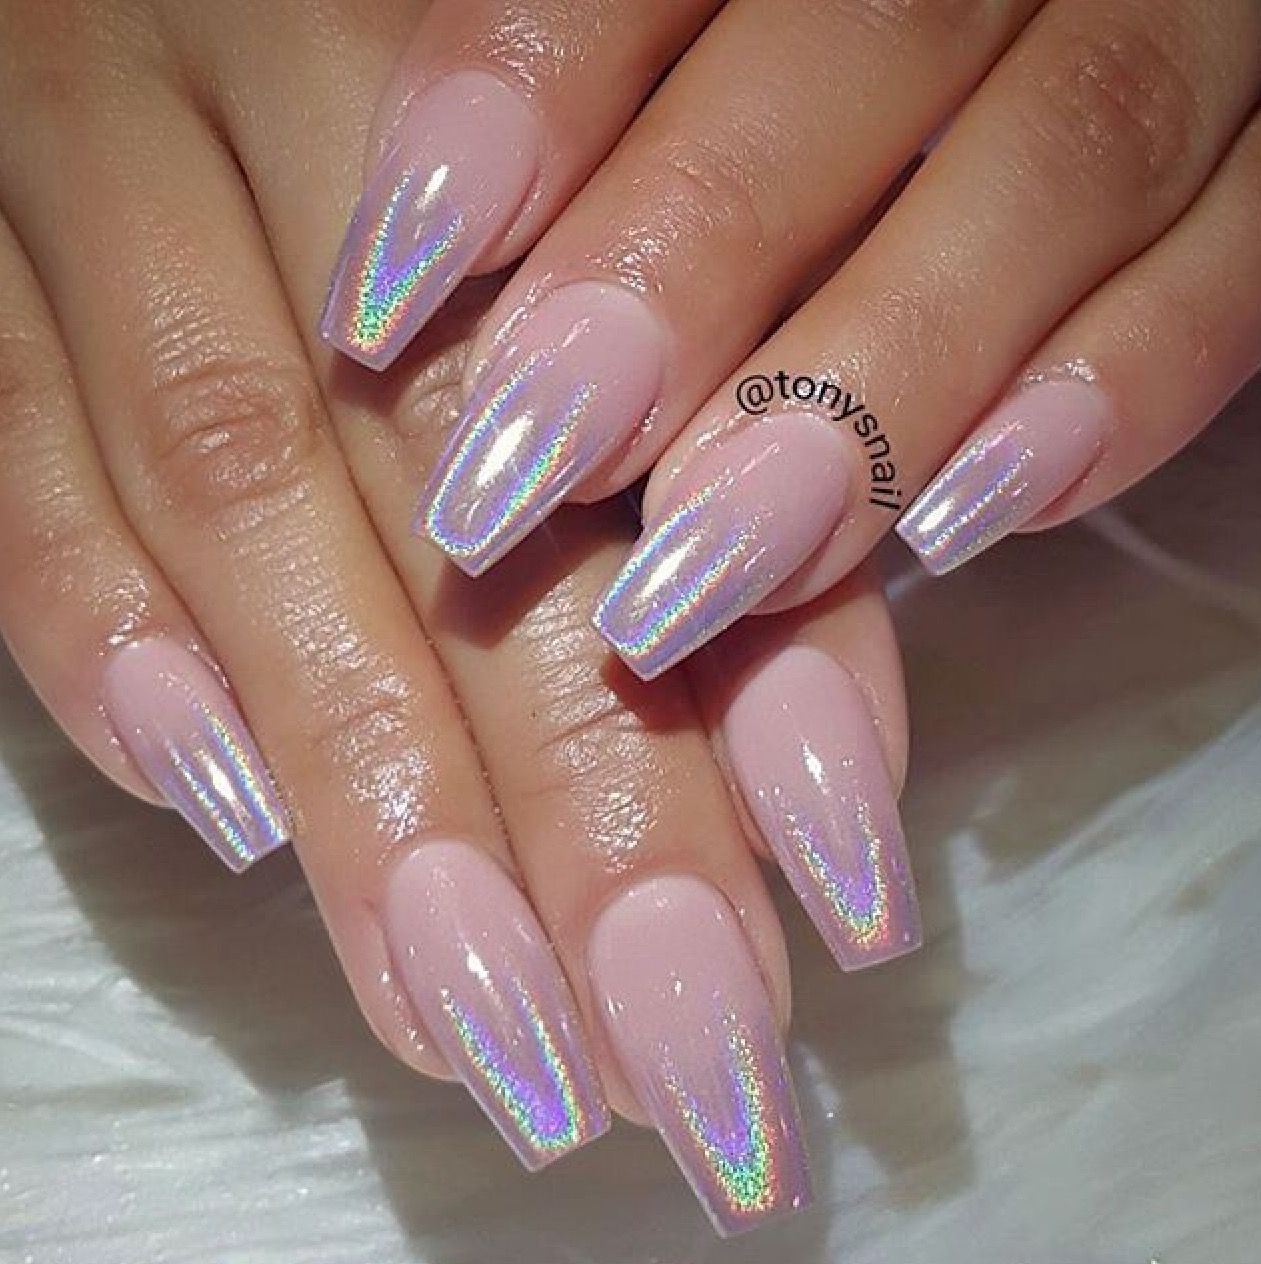 Powder pink nails pictures photos and images for facebook tumblr - Nails On 10 Holographic Chrome Ombr Https Www Facebook